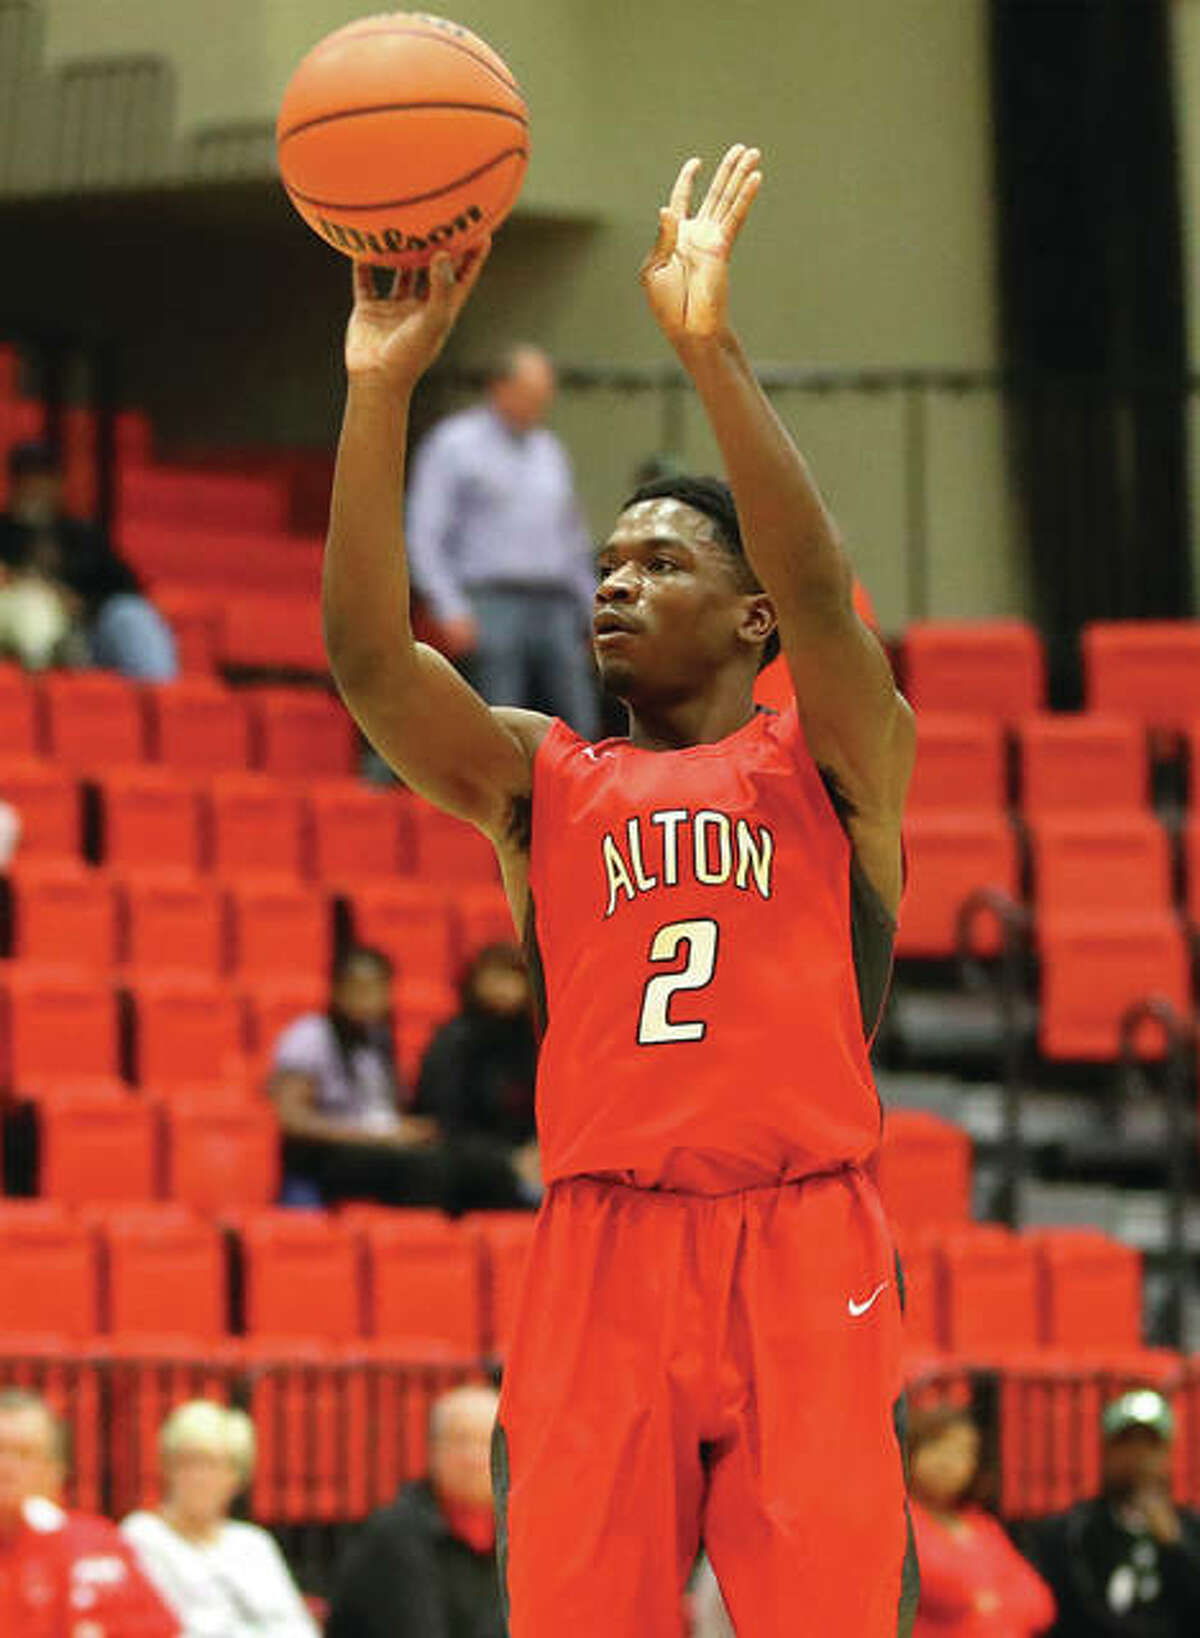 Alton's Kevin Caldwell, shown taking a 3 in a win over Granite City on Dec. 2 at SIUE, hit the game-winning 3-pointer Friday in the quarterfinals of the Centralia Tournament.